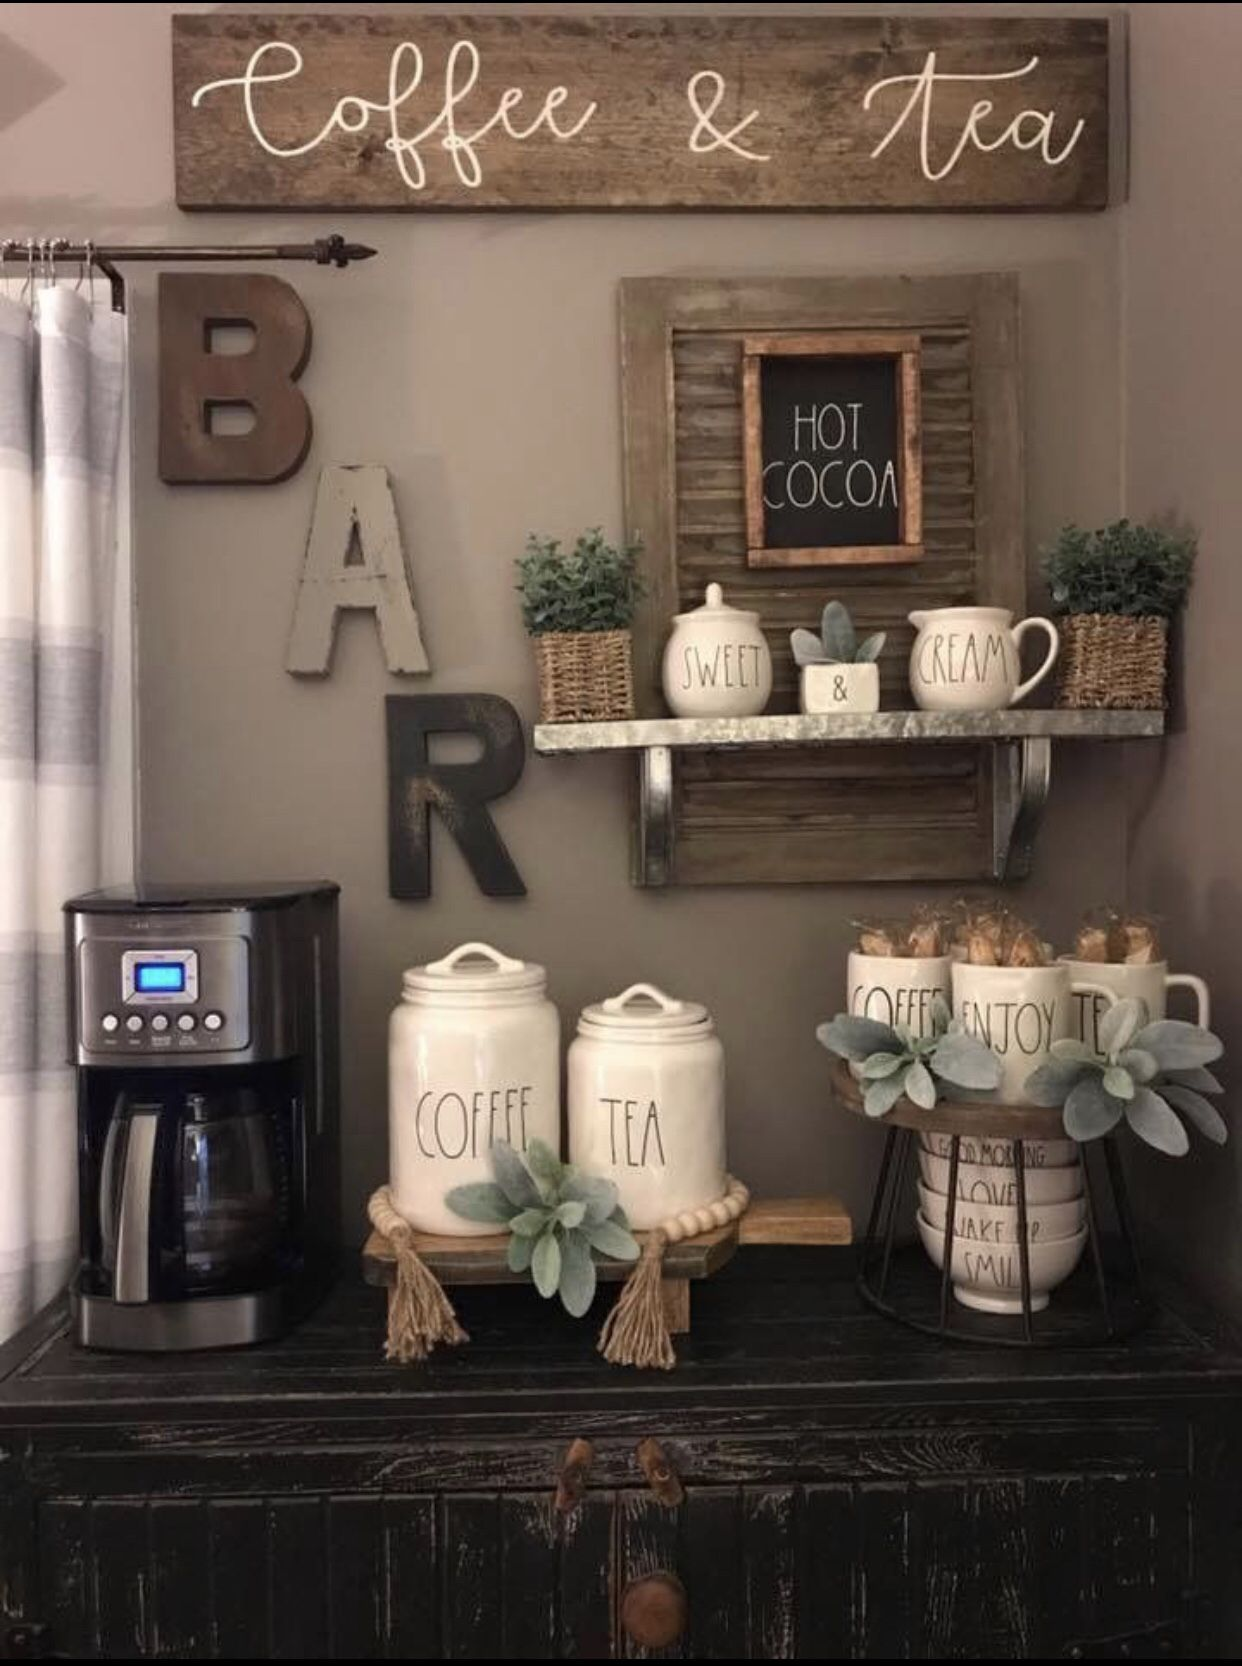 Happy Saturday Excited To Be Out And About All Day House Hunting With My Buyers What Are Your W Design De Cuisine Rustique Bar A Cafe Idee Decoration Cuisine